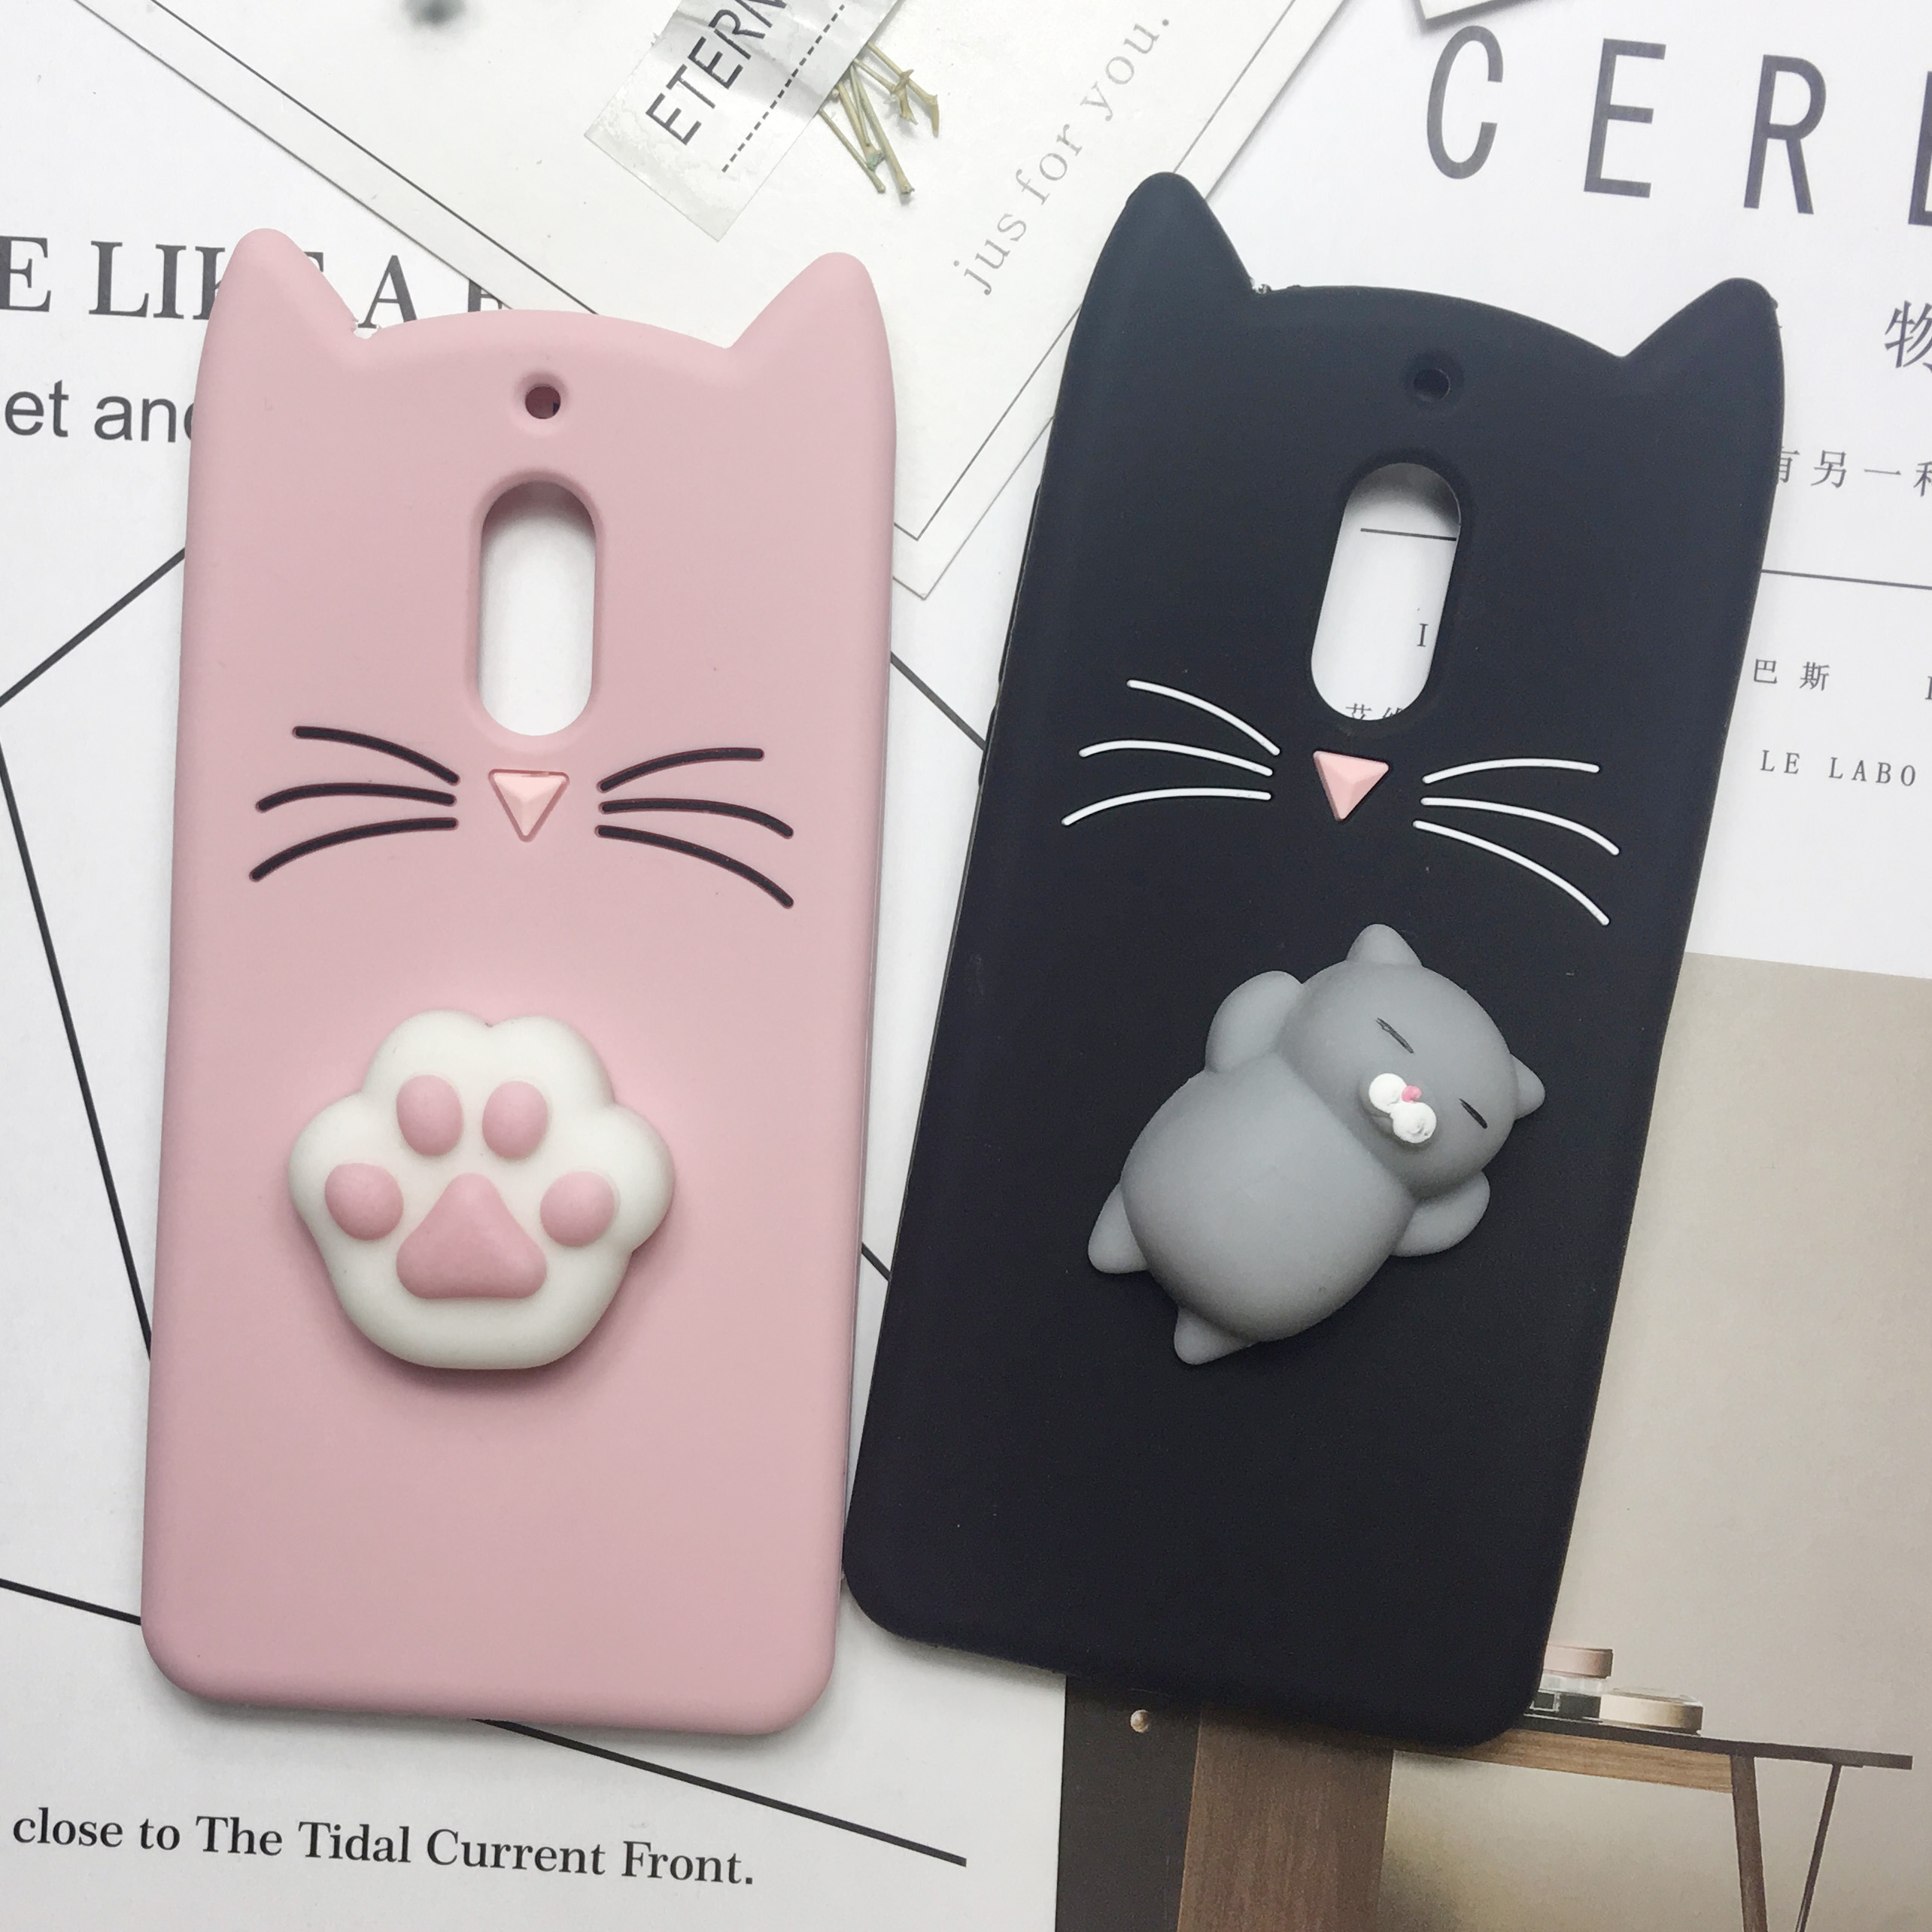 Cute 3D Cartoon Squishy beard Cat For Nokia 6 Silicone Cases For Nokia 2 Girl Style